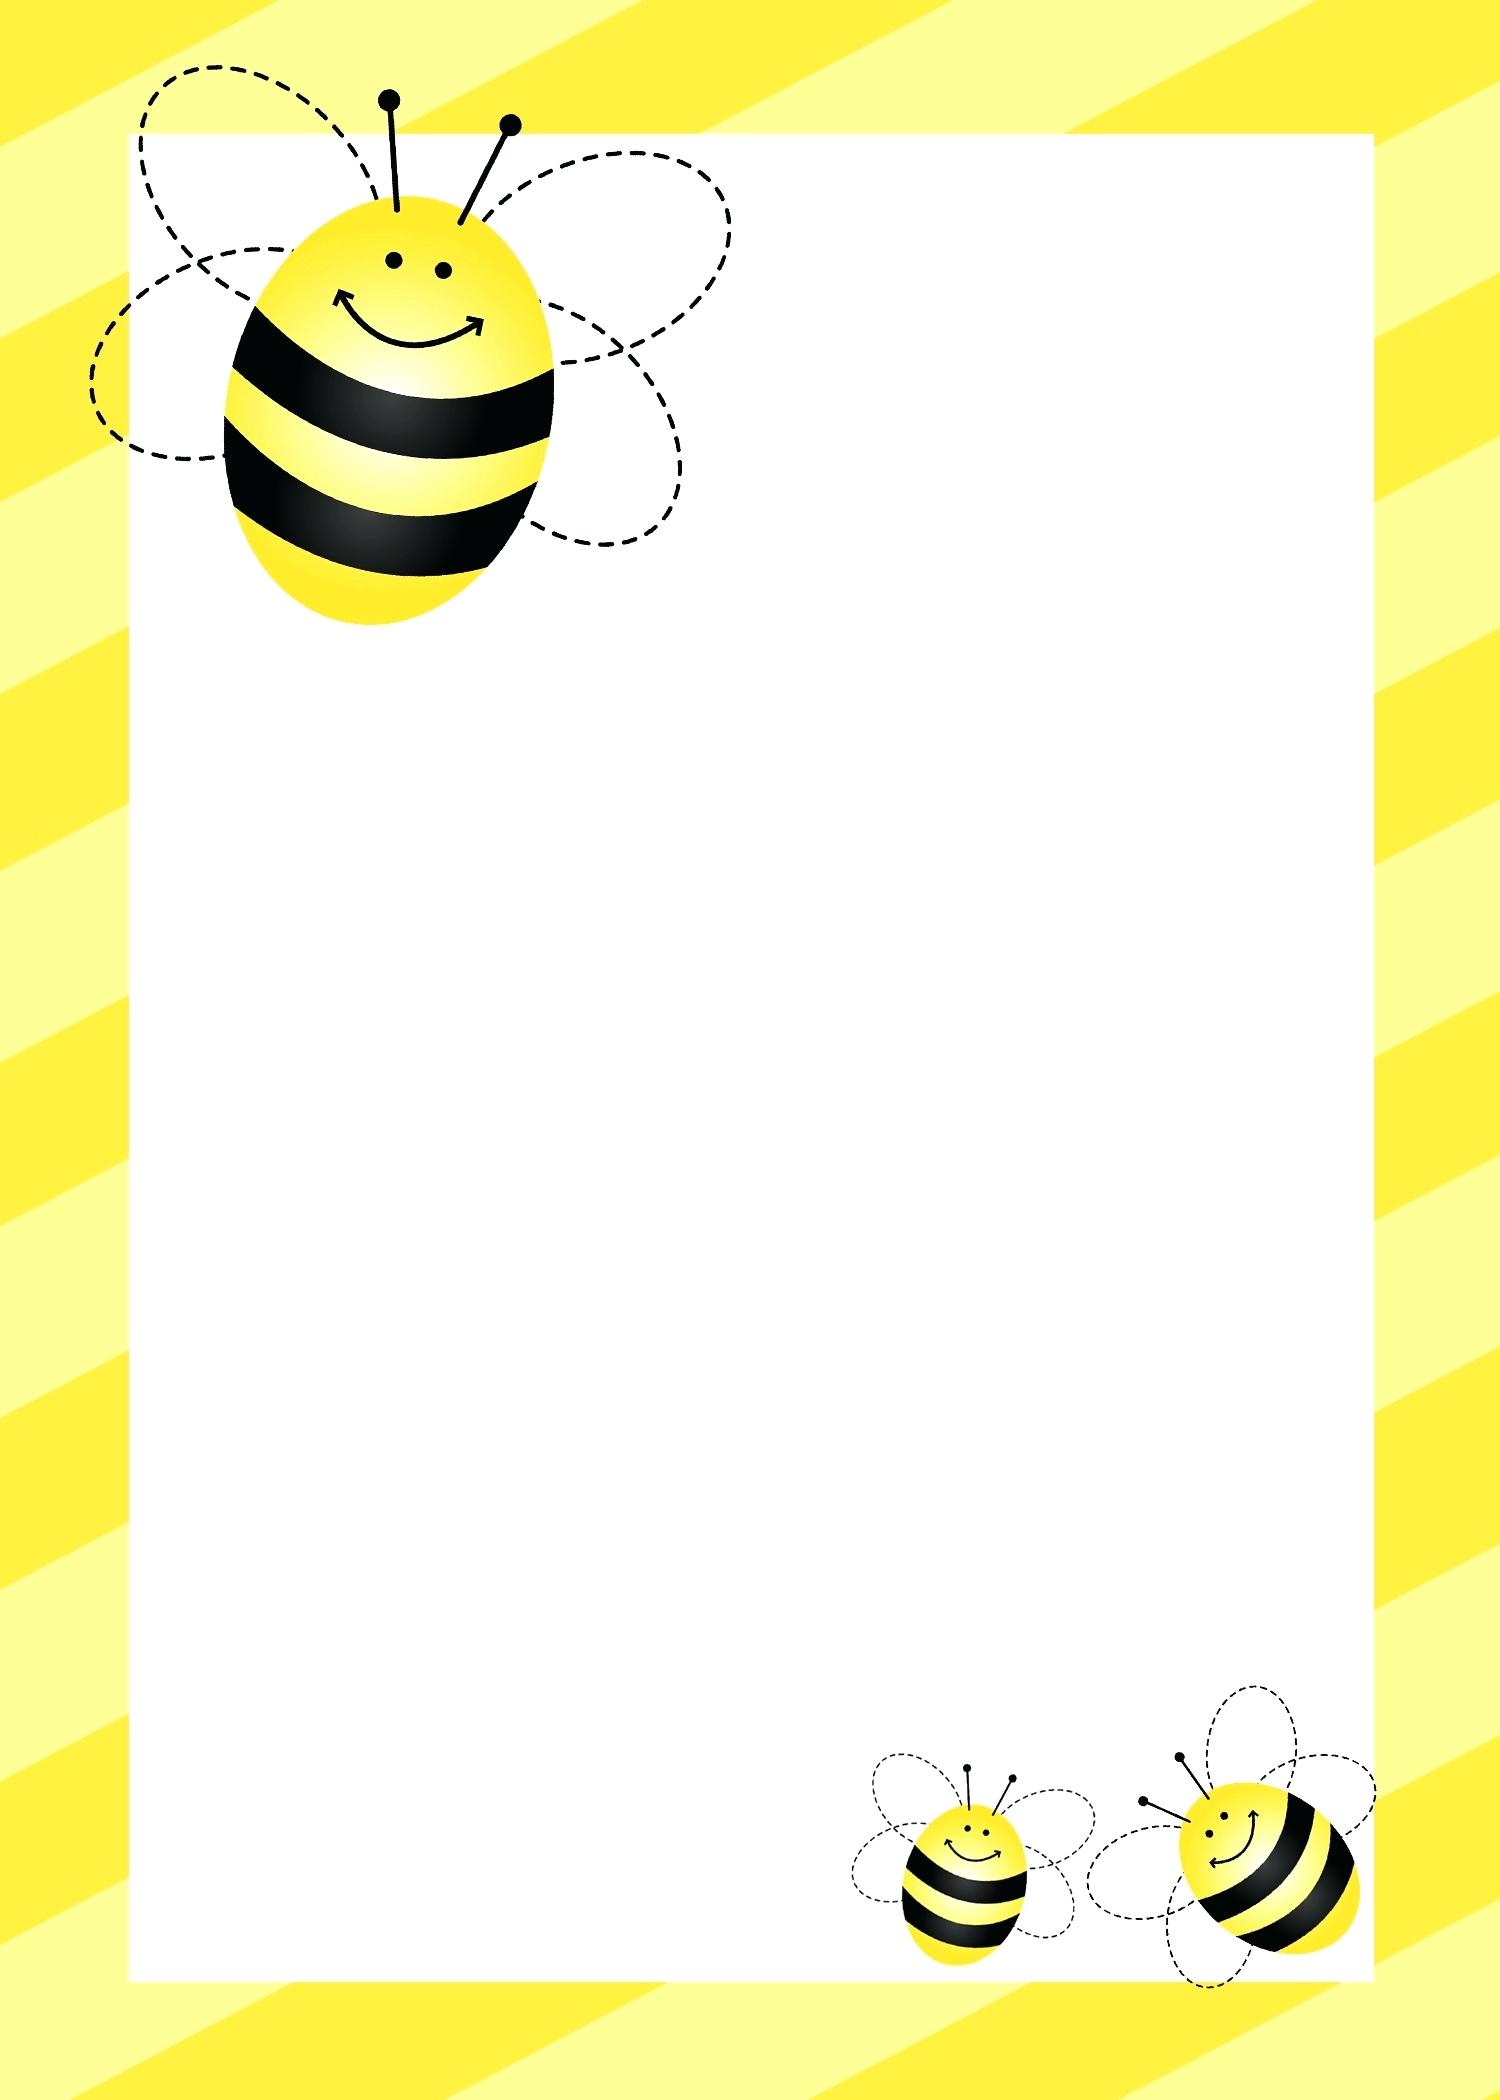 printable birthday borders ; birthday-border-paper-printable-handpicked-cool-borders-for-invitations-and-more-home